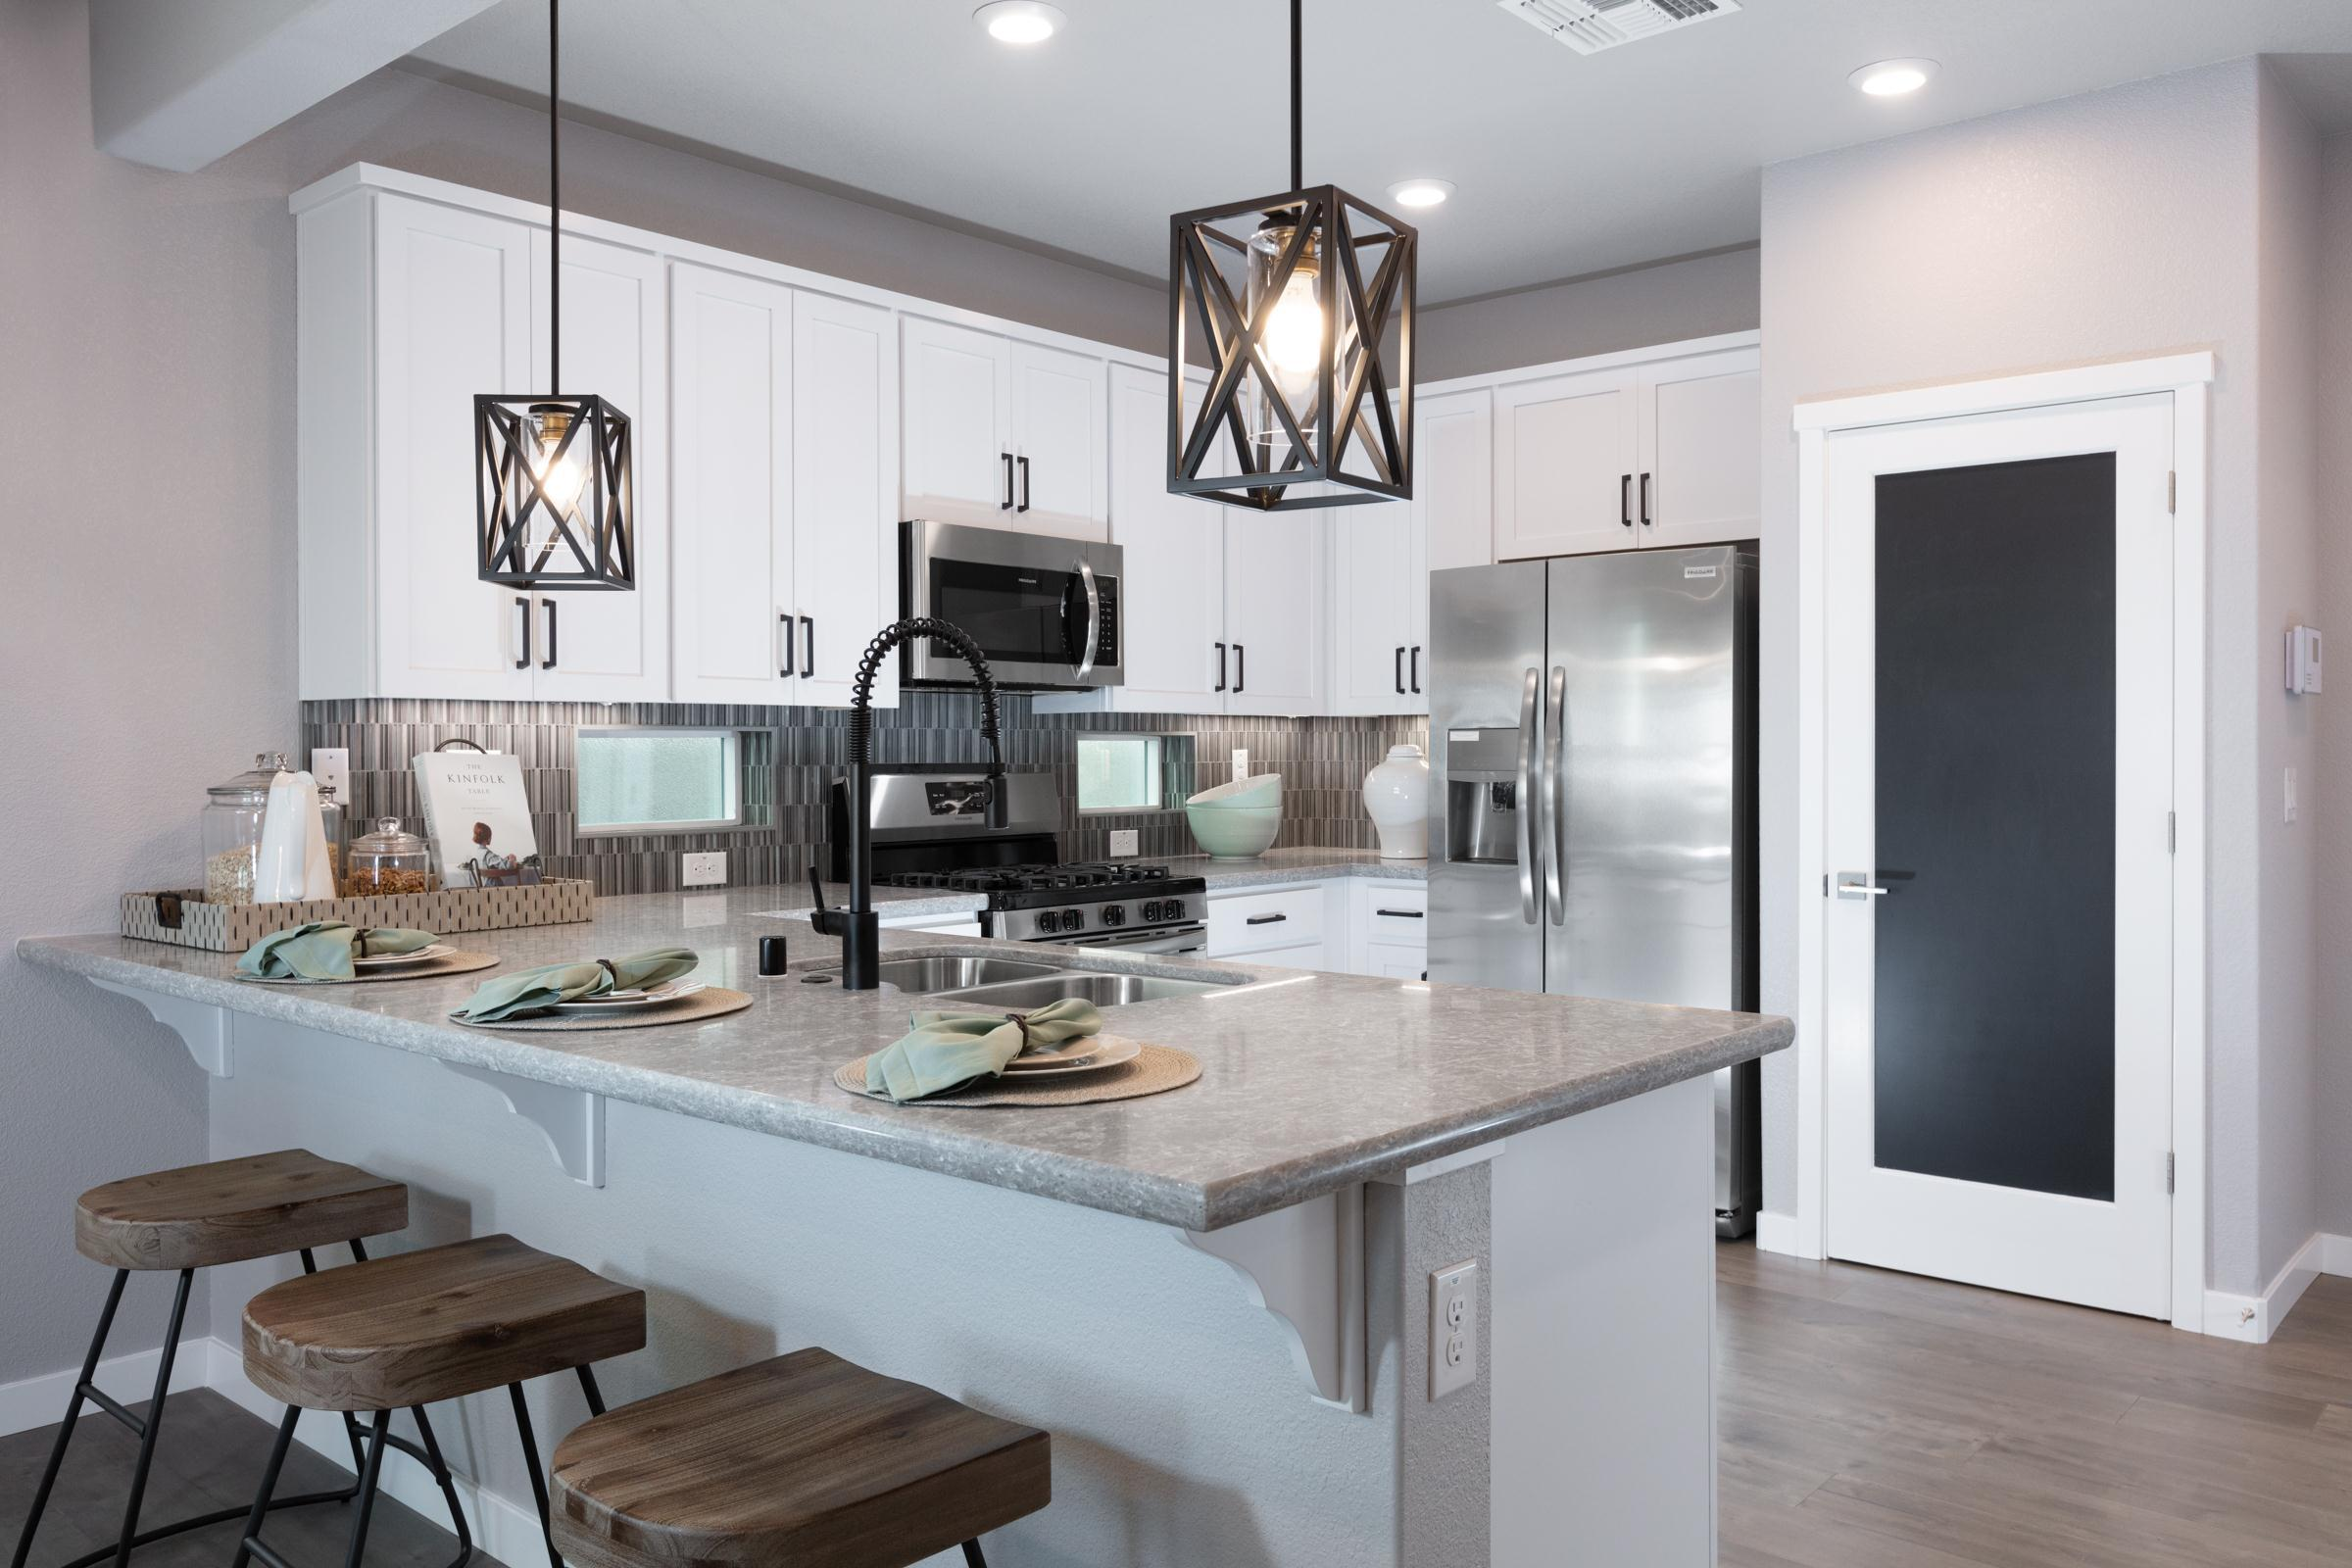 Kitchen featured in the Plan 8 By Anthem United Homes Inc in Sacramento, CA